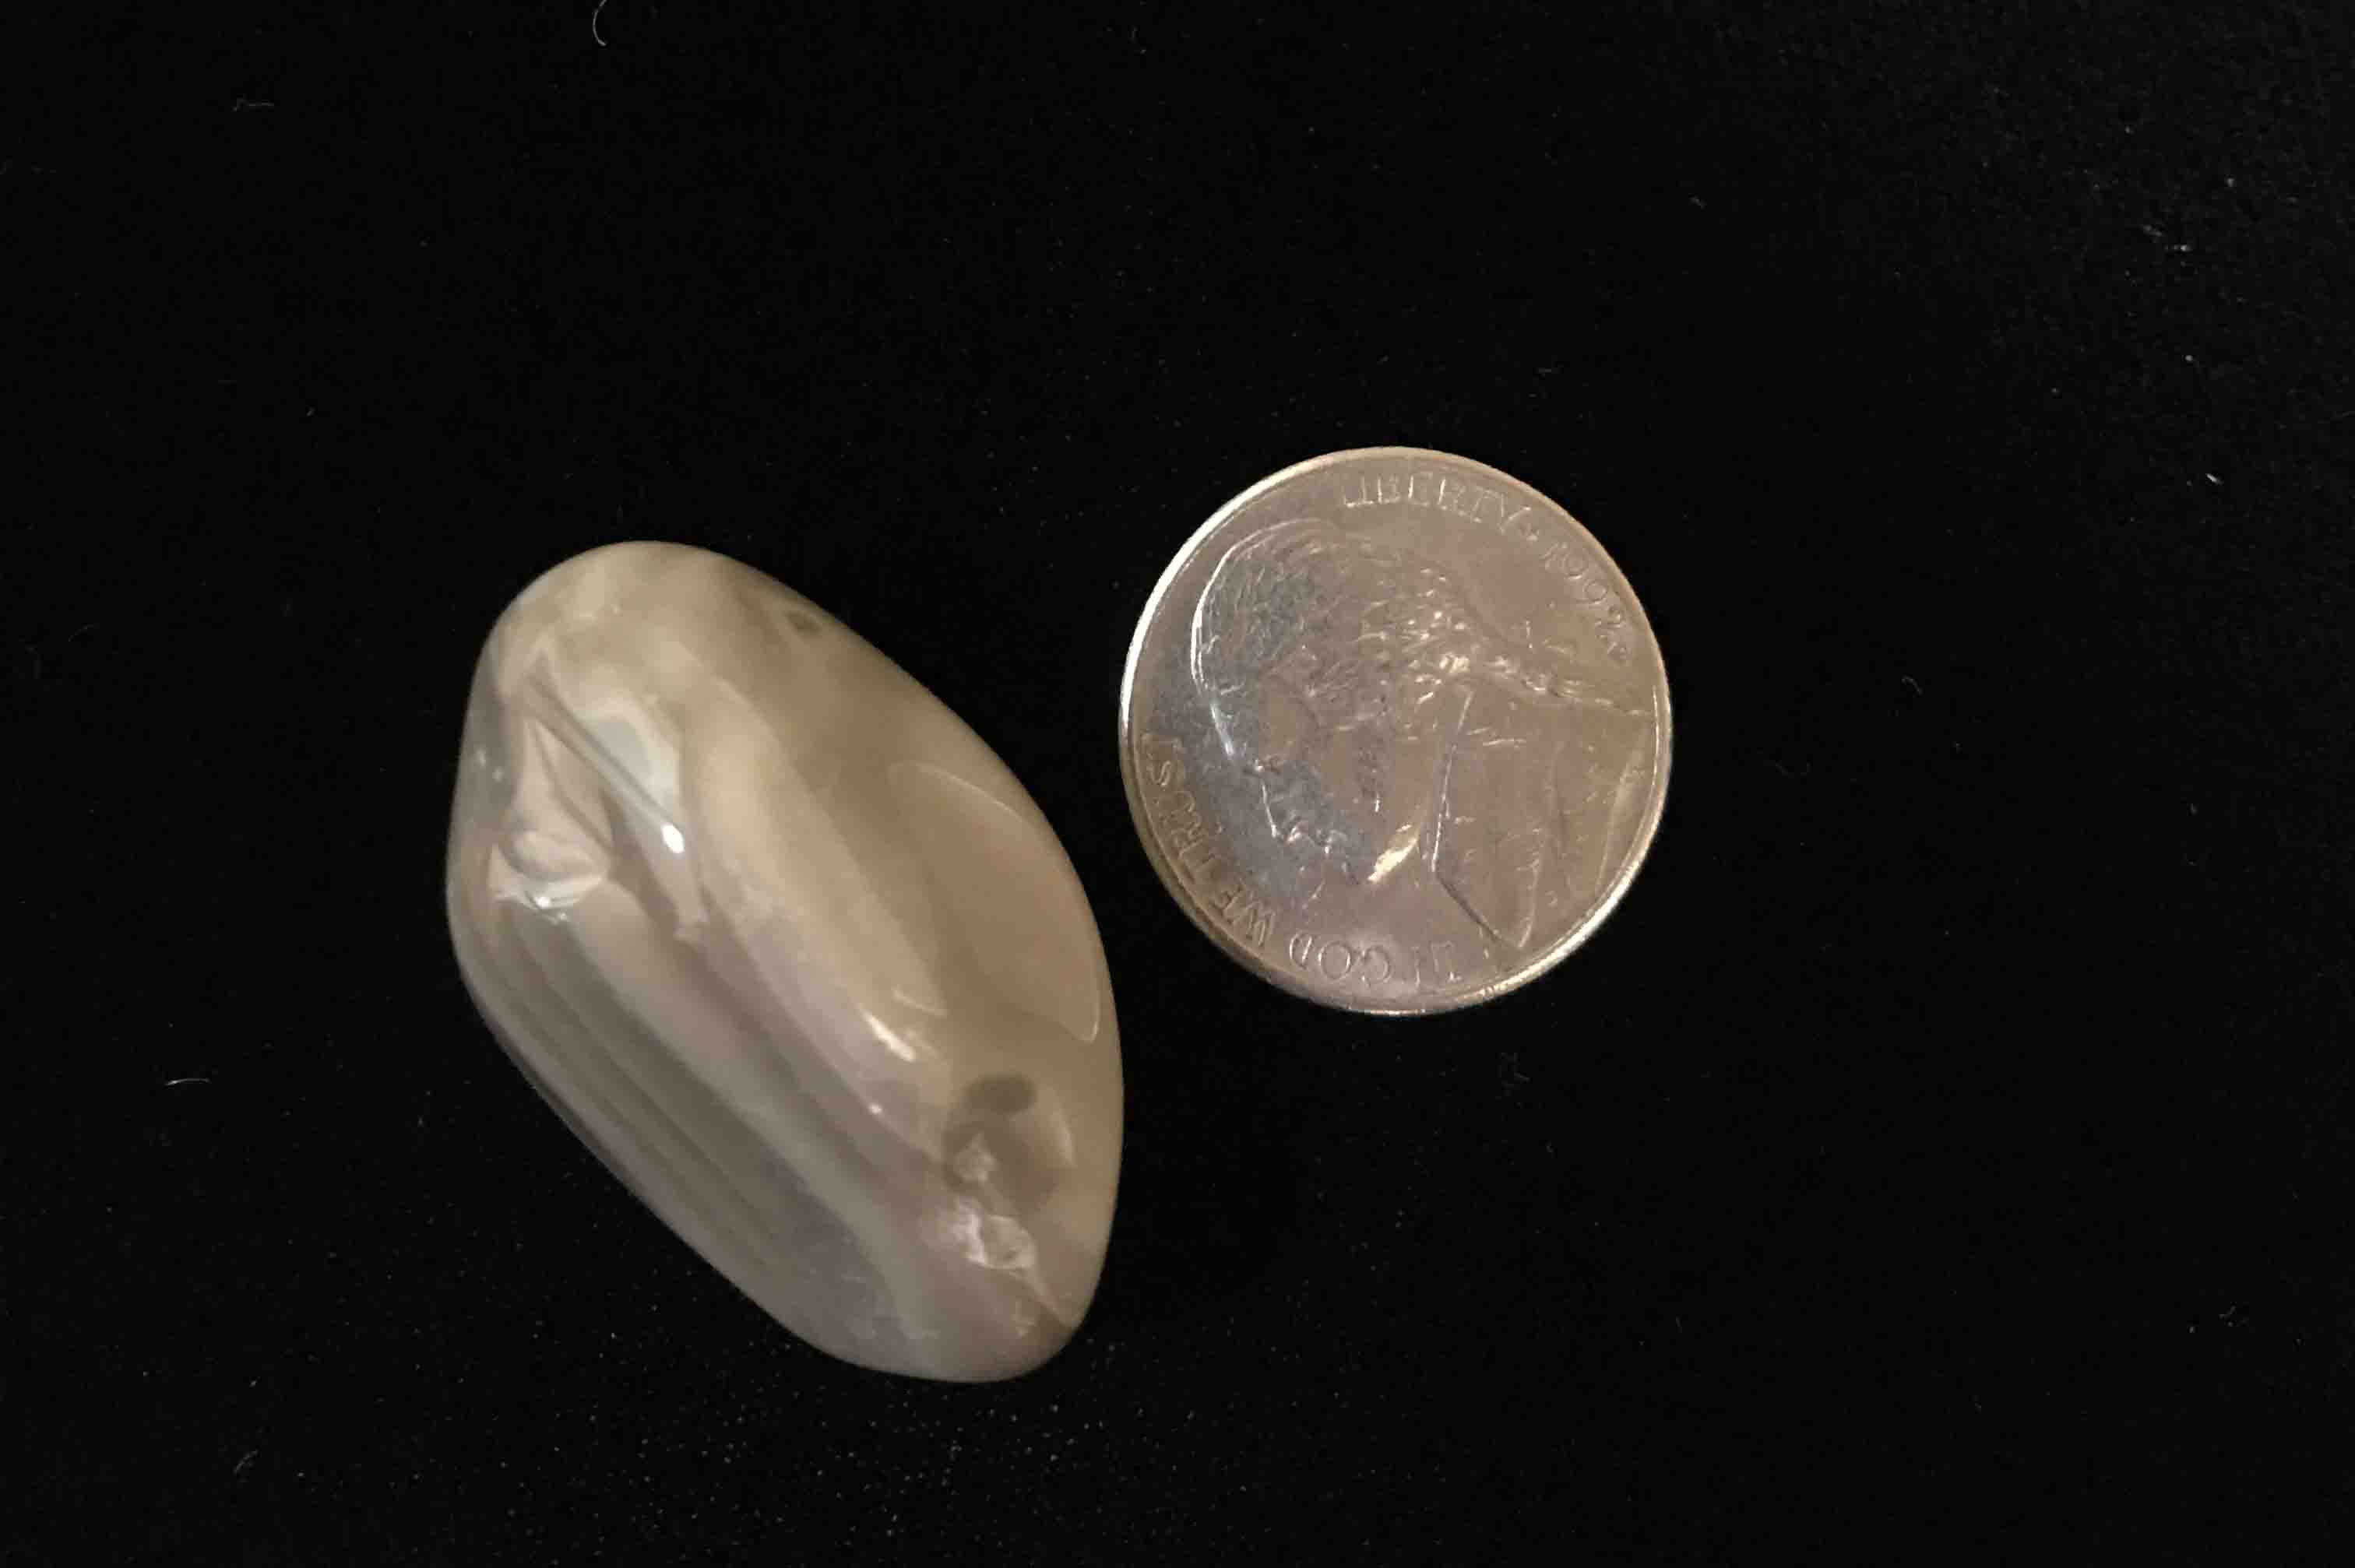 Comparing size of Flint stone to a nickel